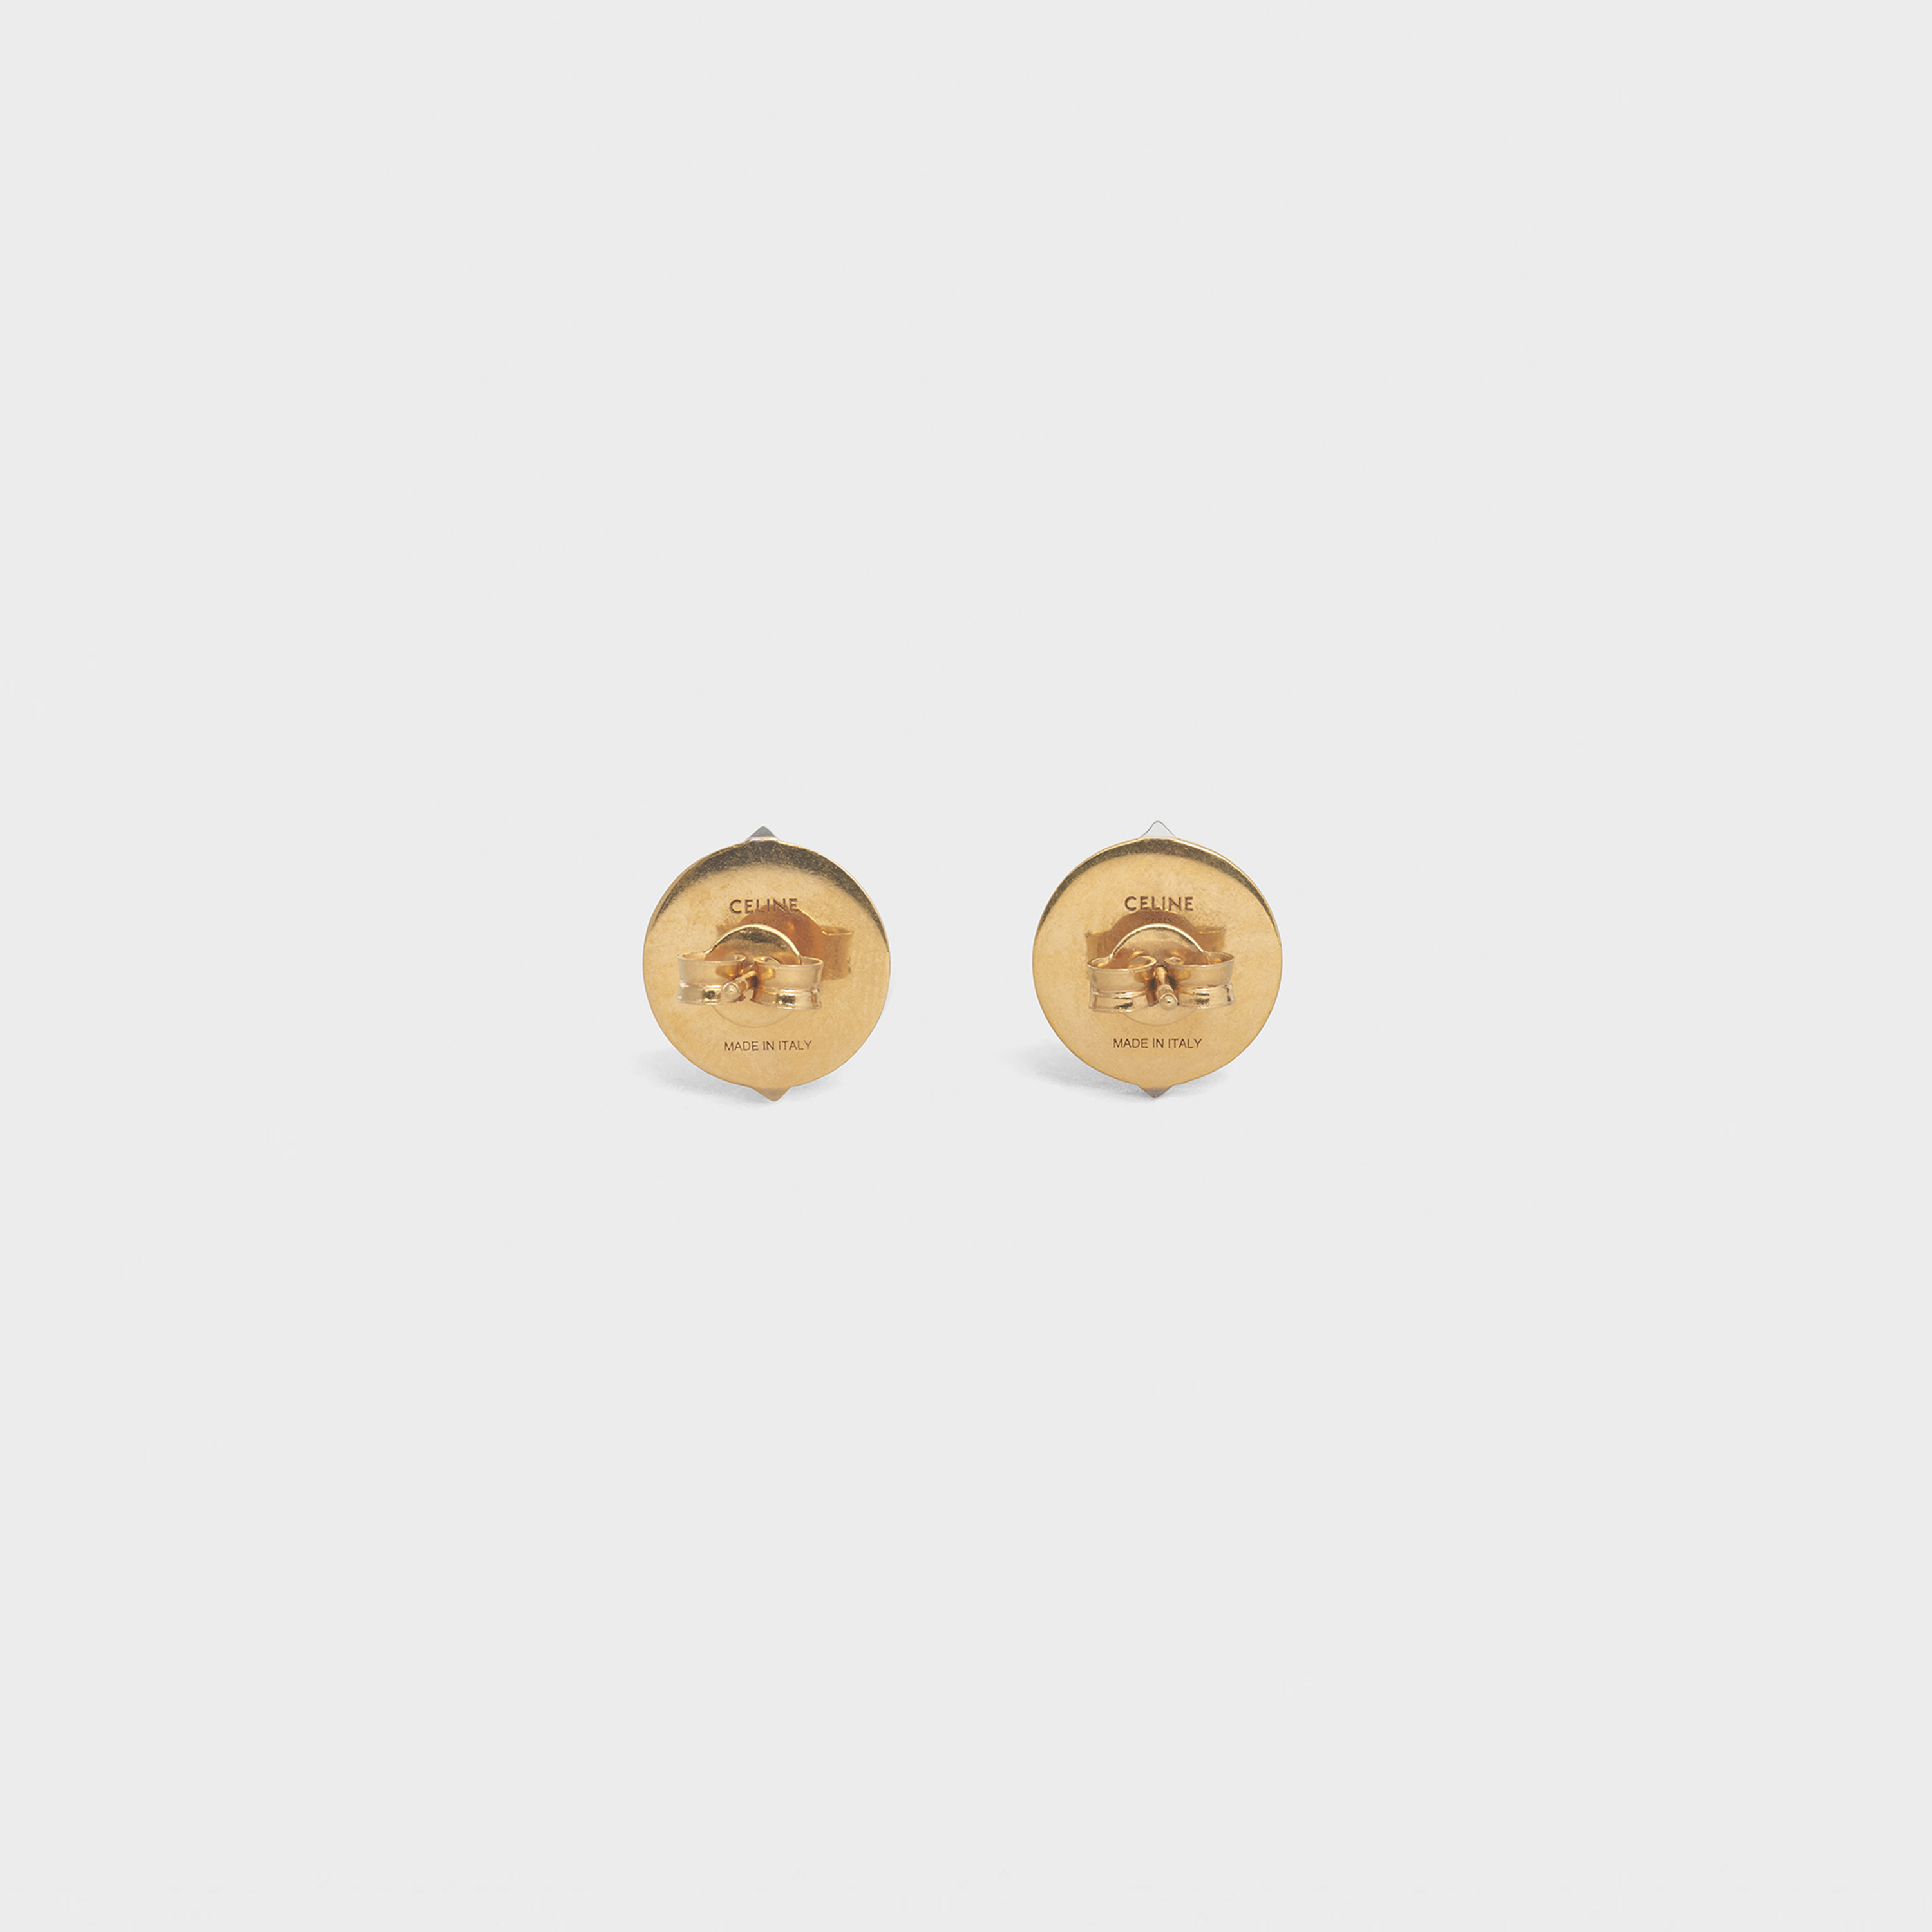 Small Pyramid Studs Earrings in Brass with Gold and Rhodium finish | CELINE